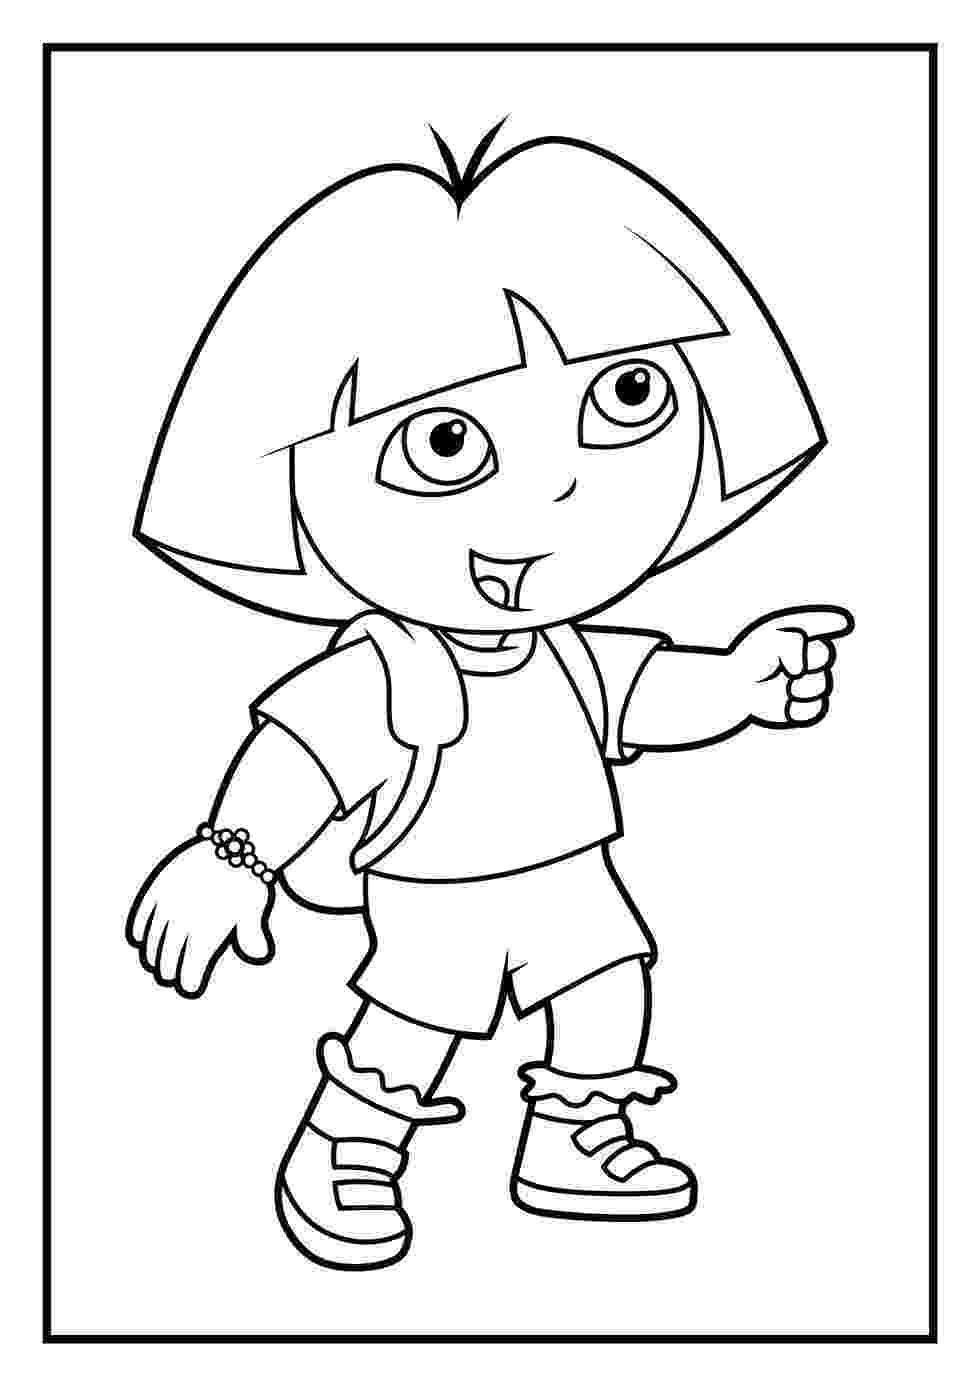 dora pics print download dora coloring pages to learn new things pics dora